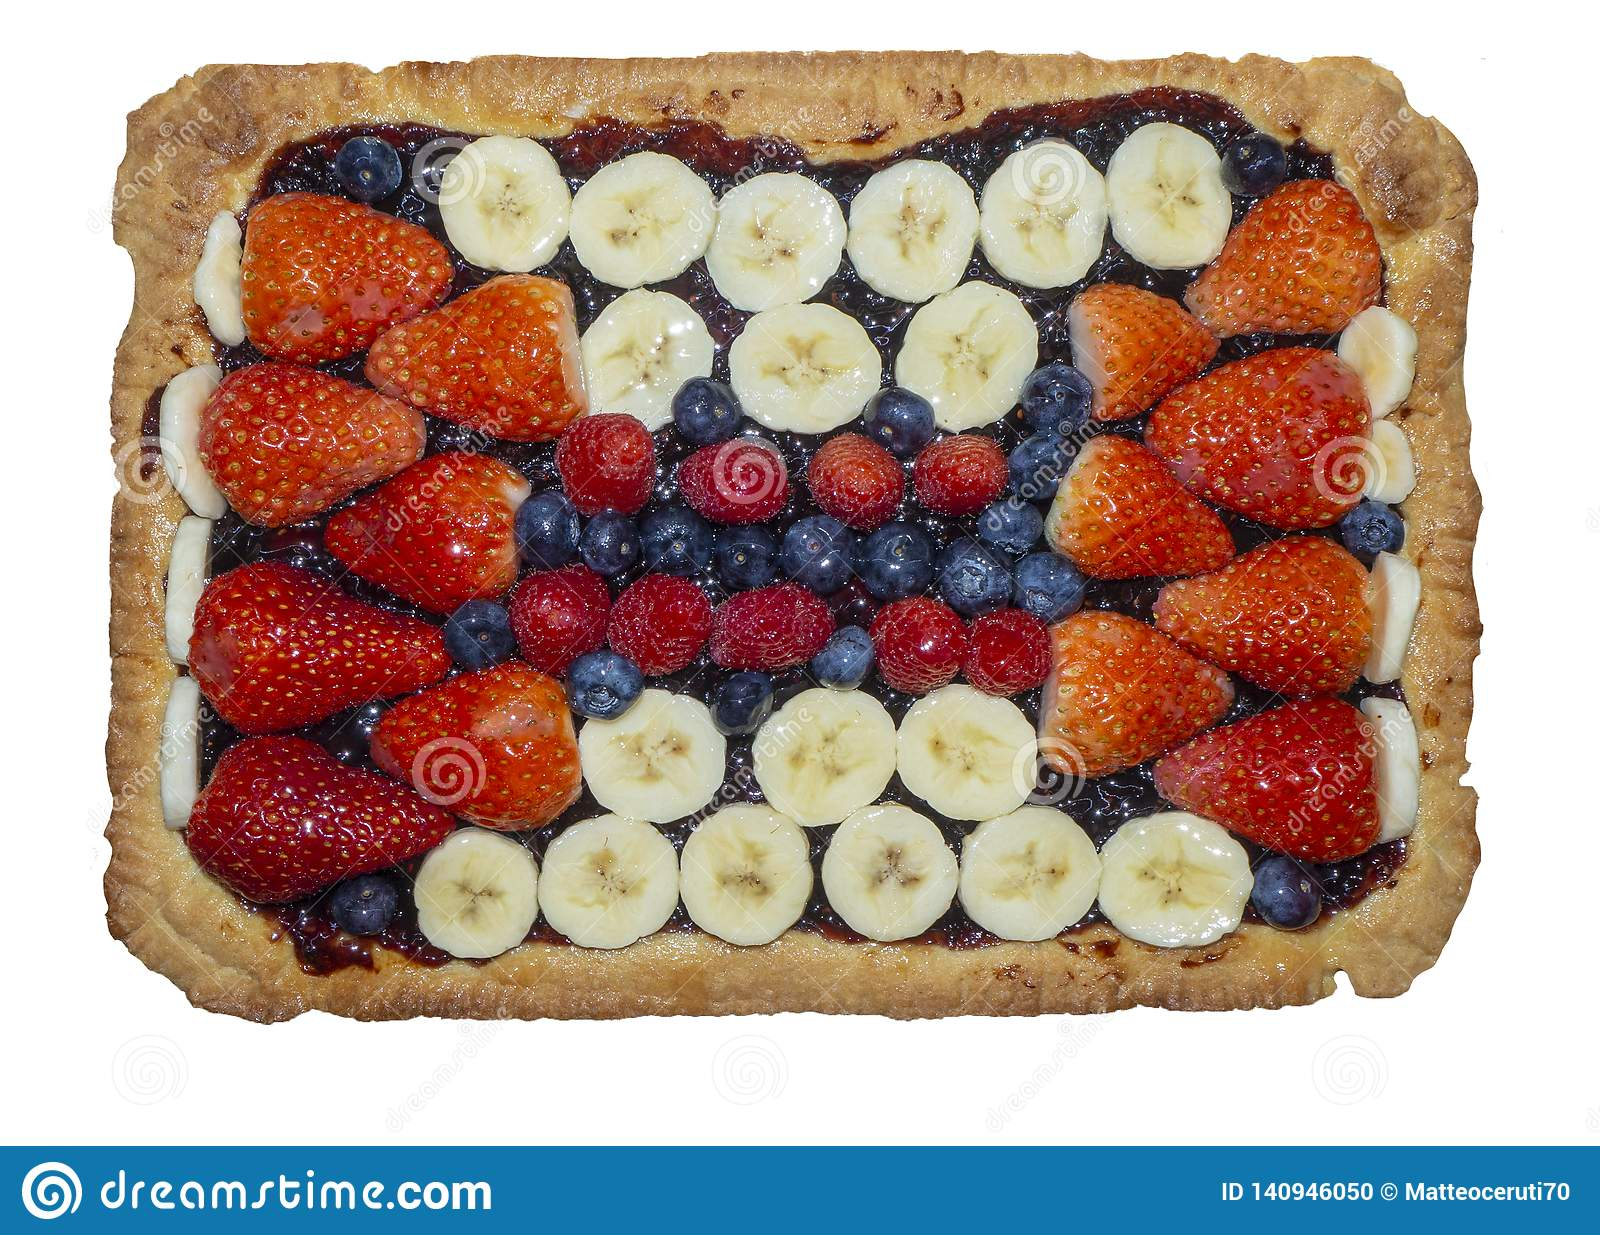 Homemade tart with fresh fruit, strawberries, bananas, blueberries and raspberries